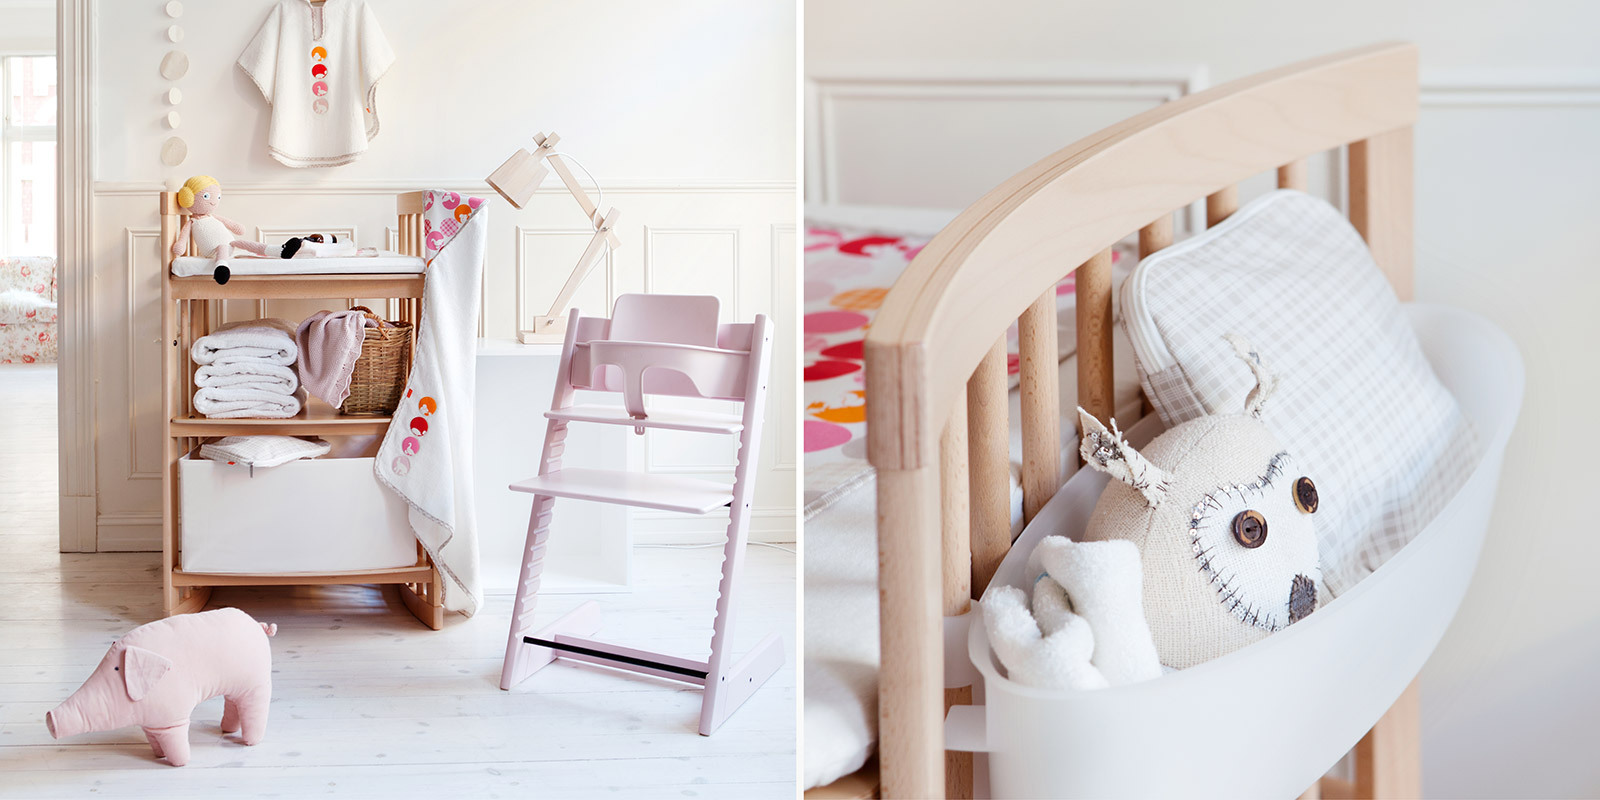 Stokke Care Mainbanner